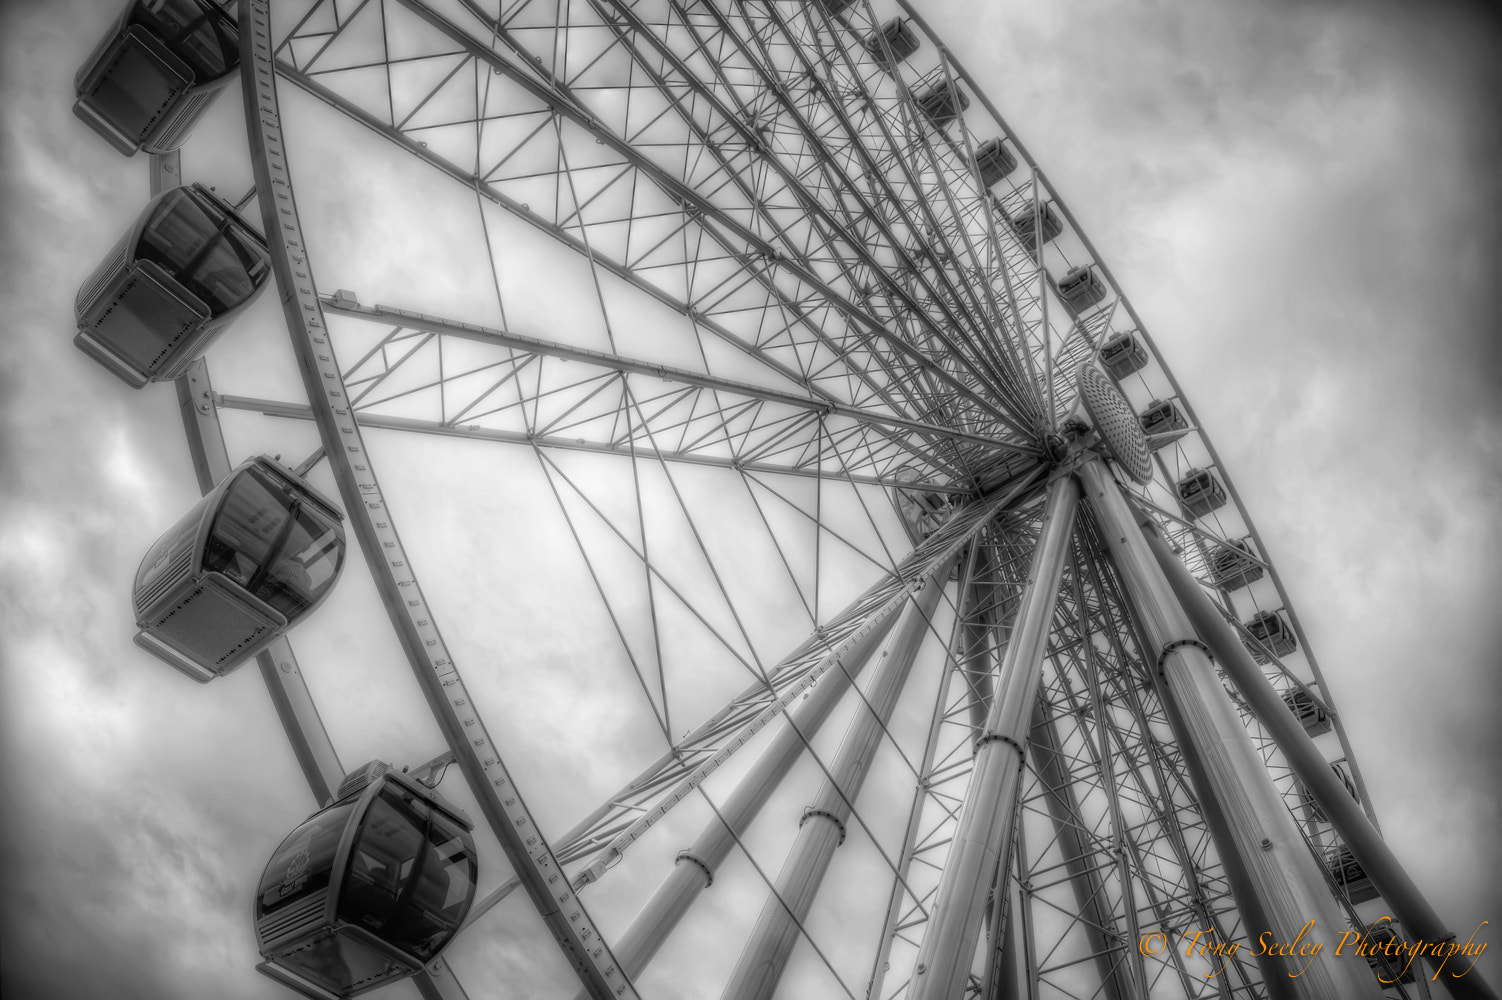 Photograph Ferris Wheel by Tony Seeley on 500px